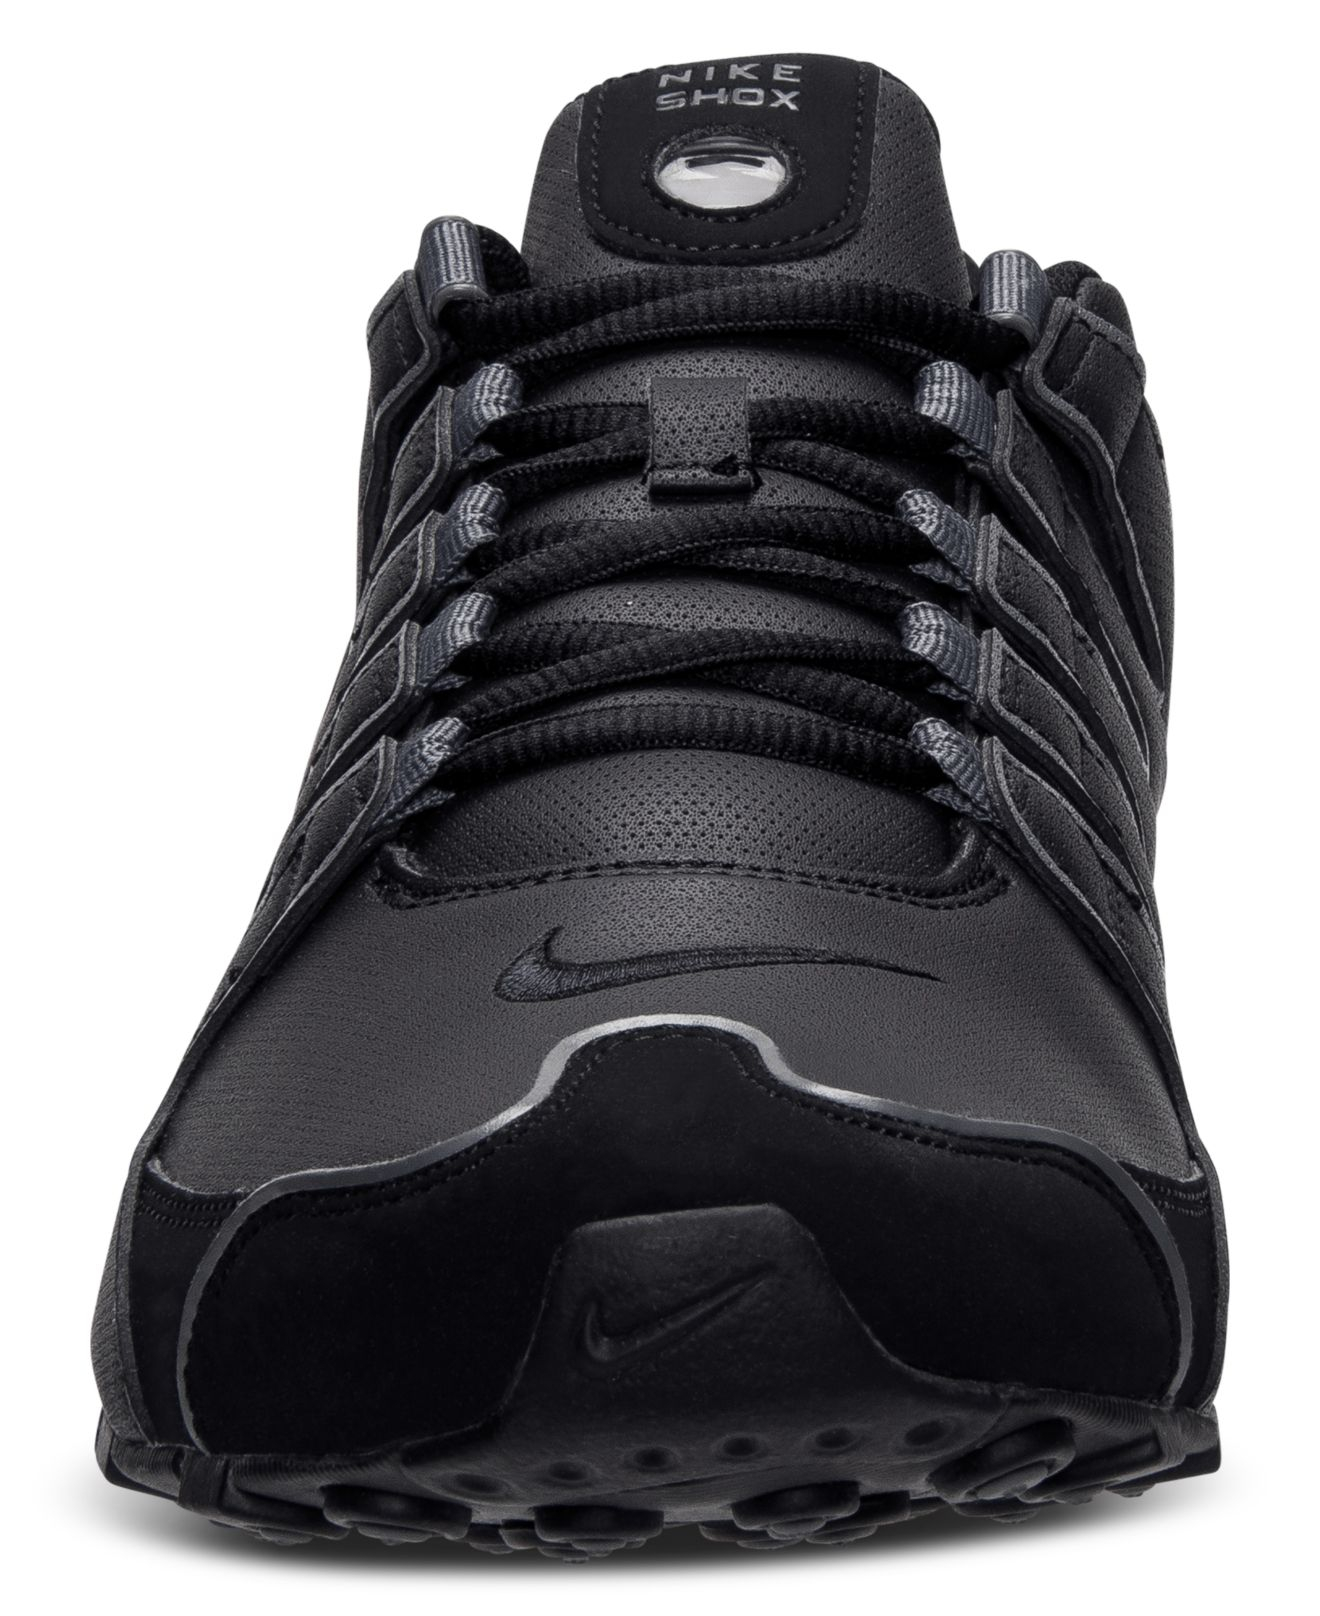 Nike Leather Men's Shox Nz Sl Running Sneakers From Finish